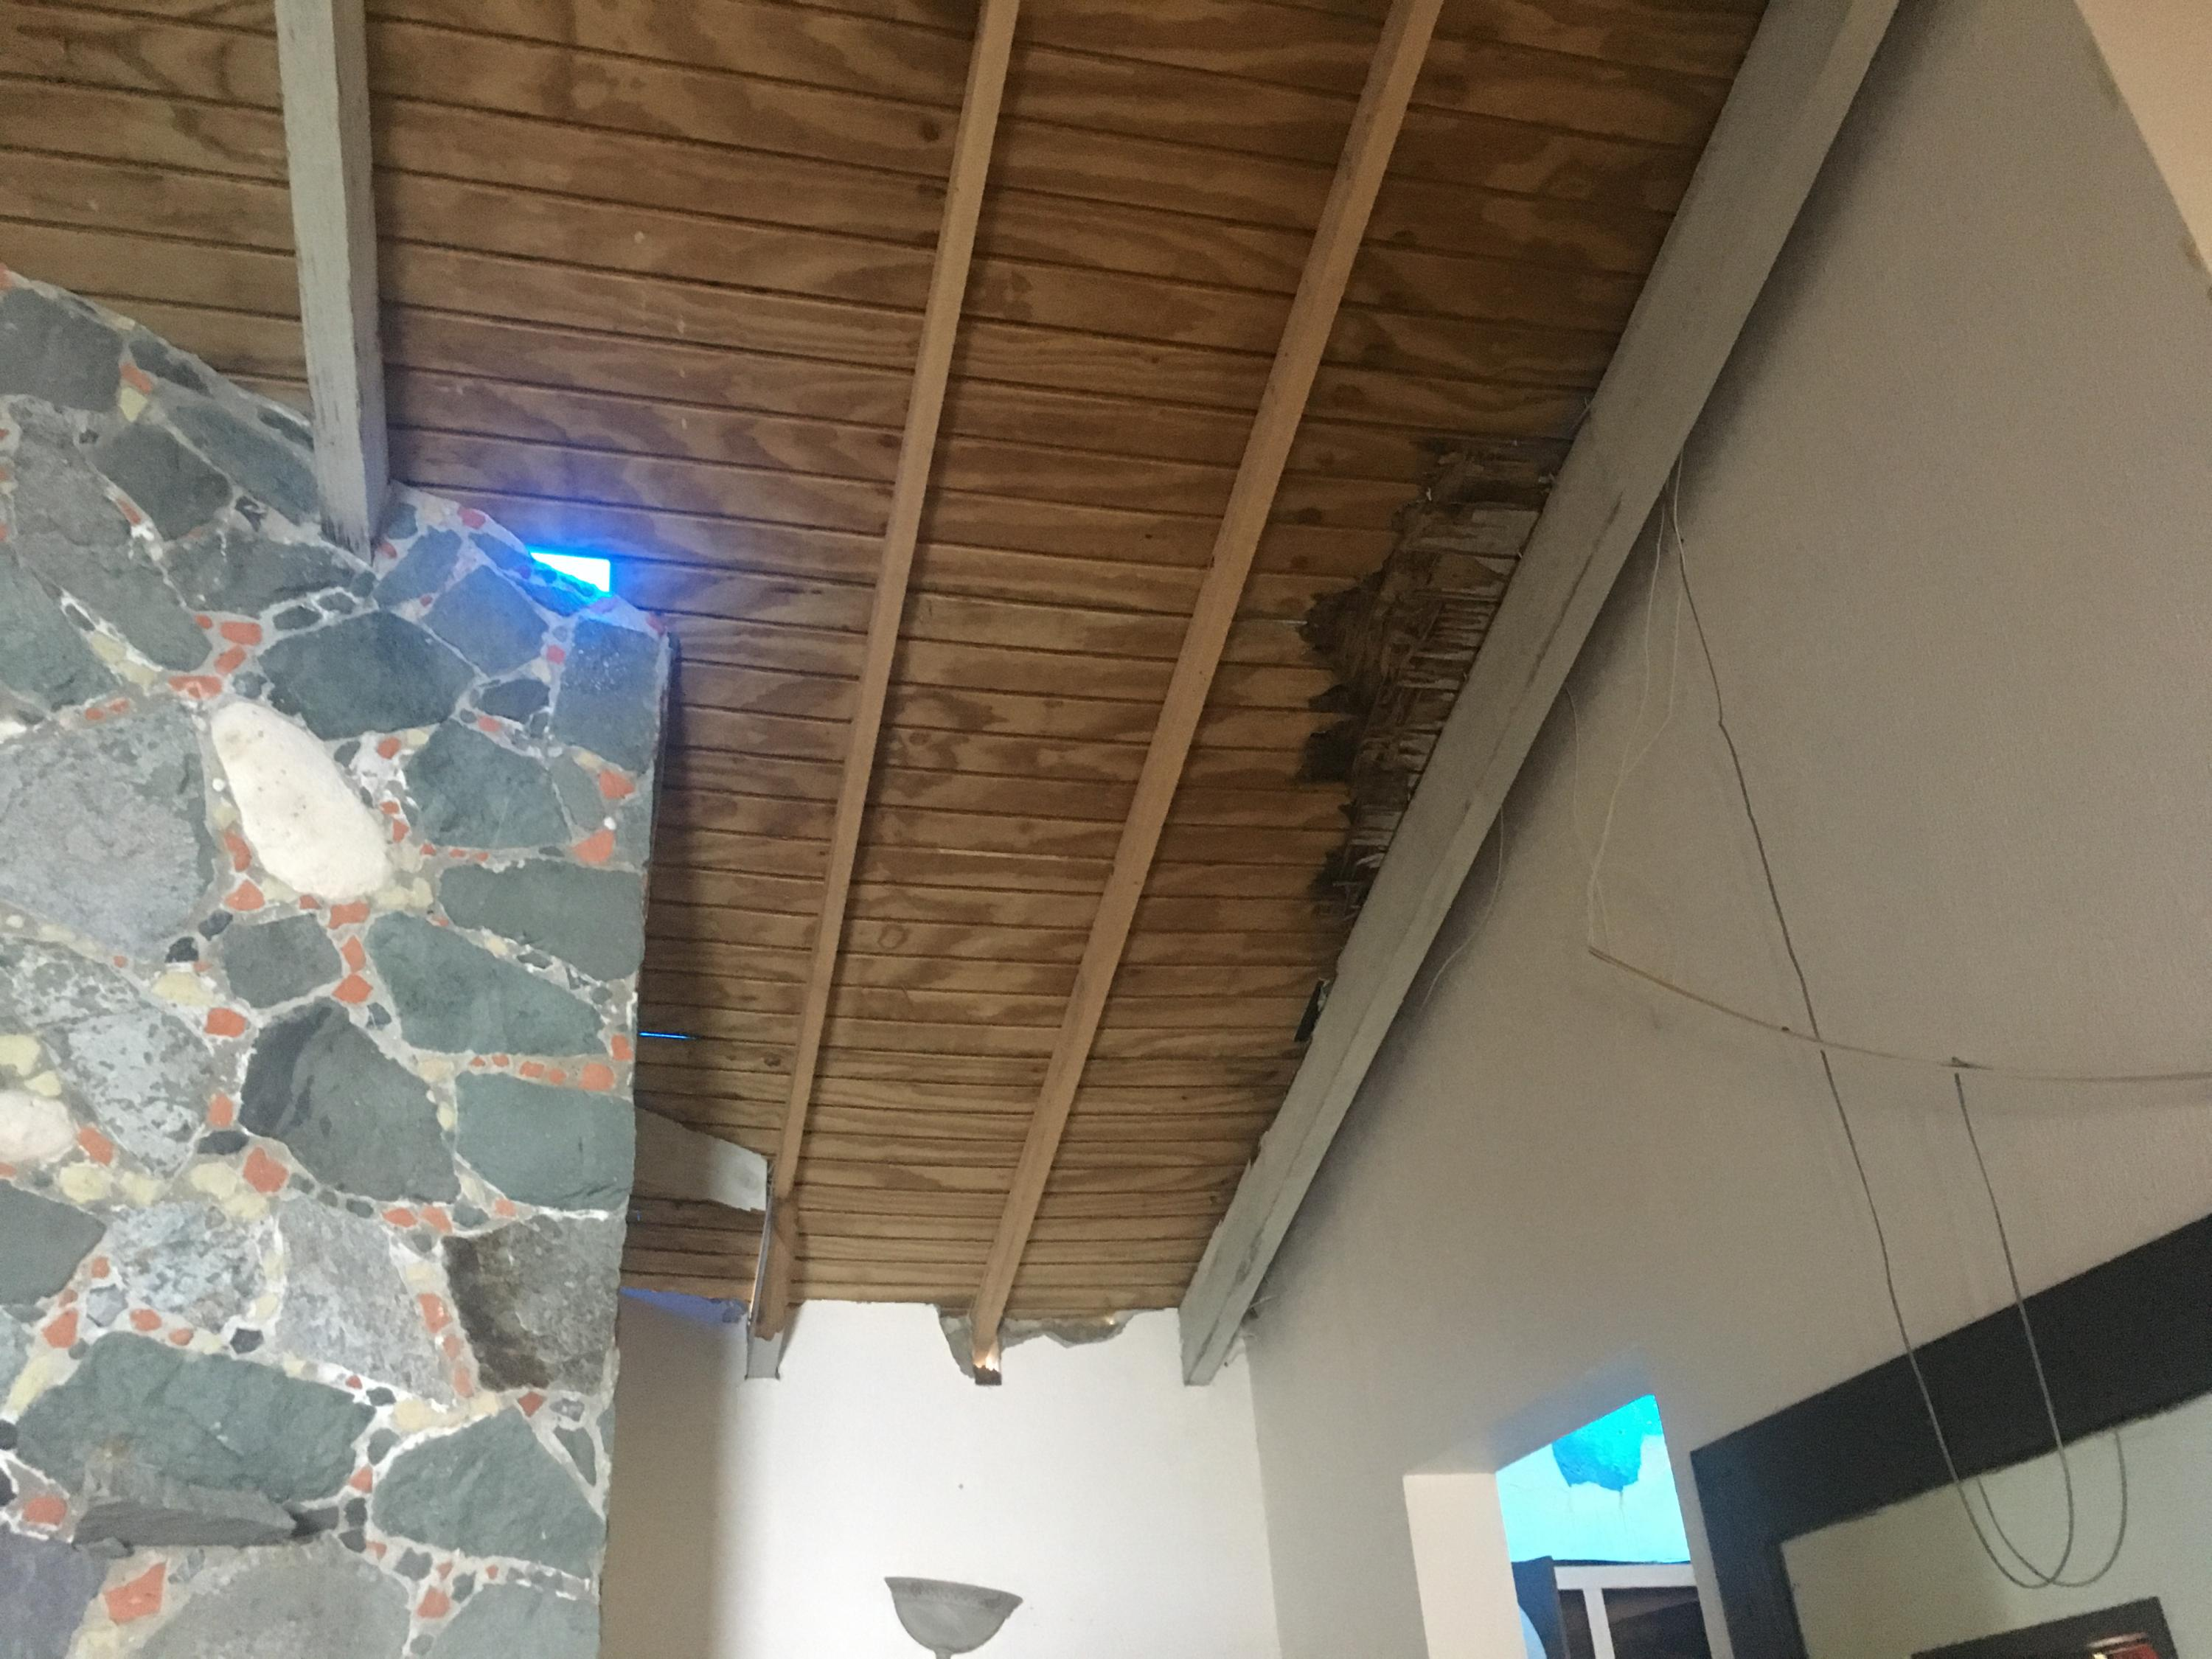 Roof damage